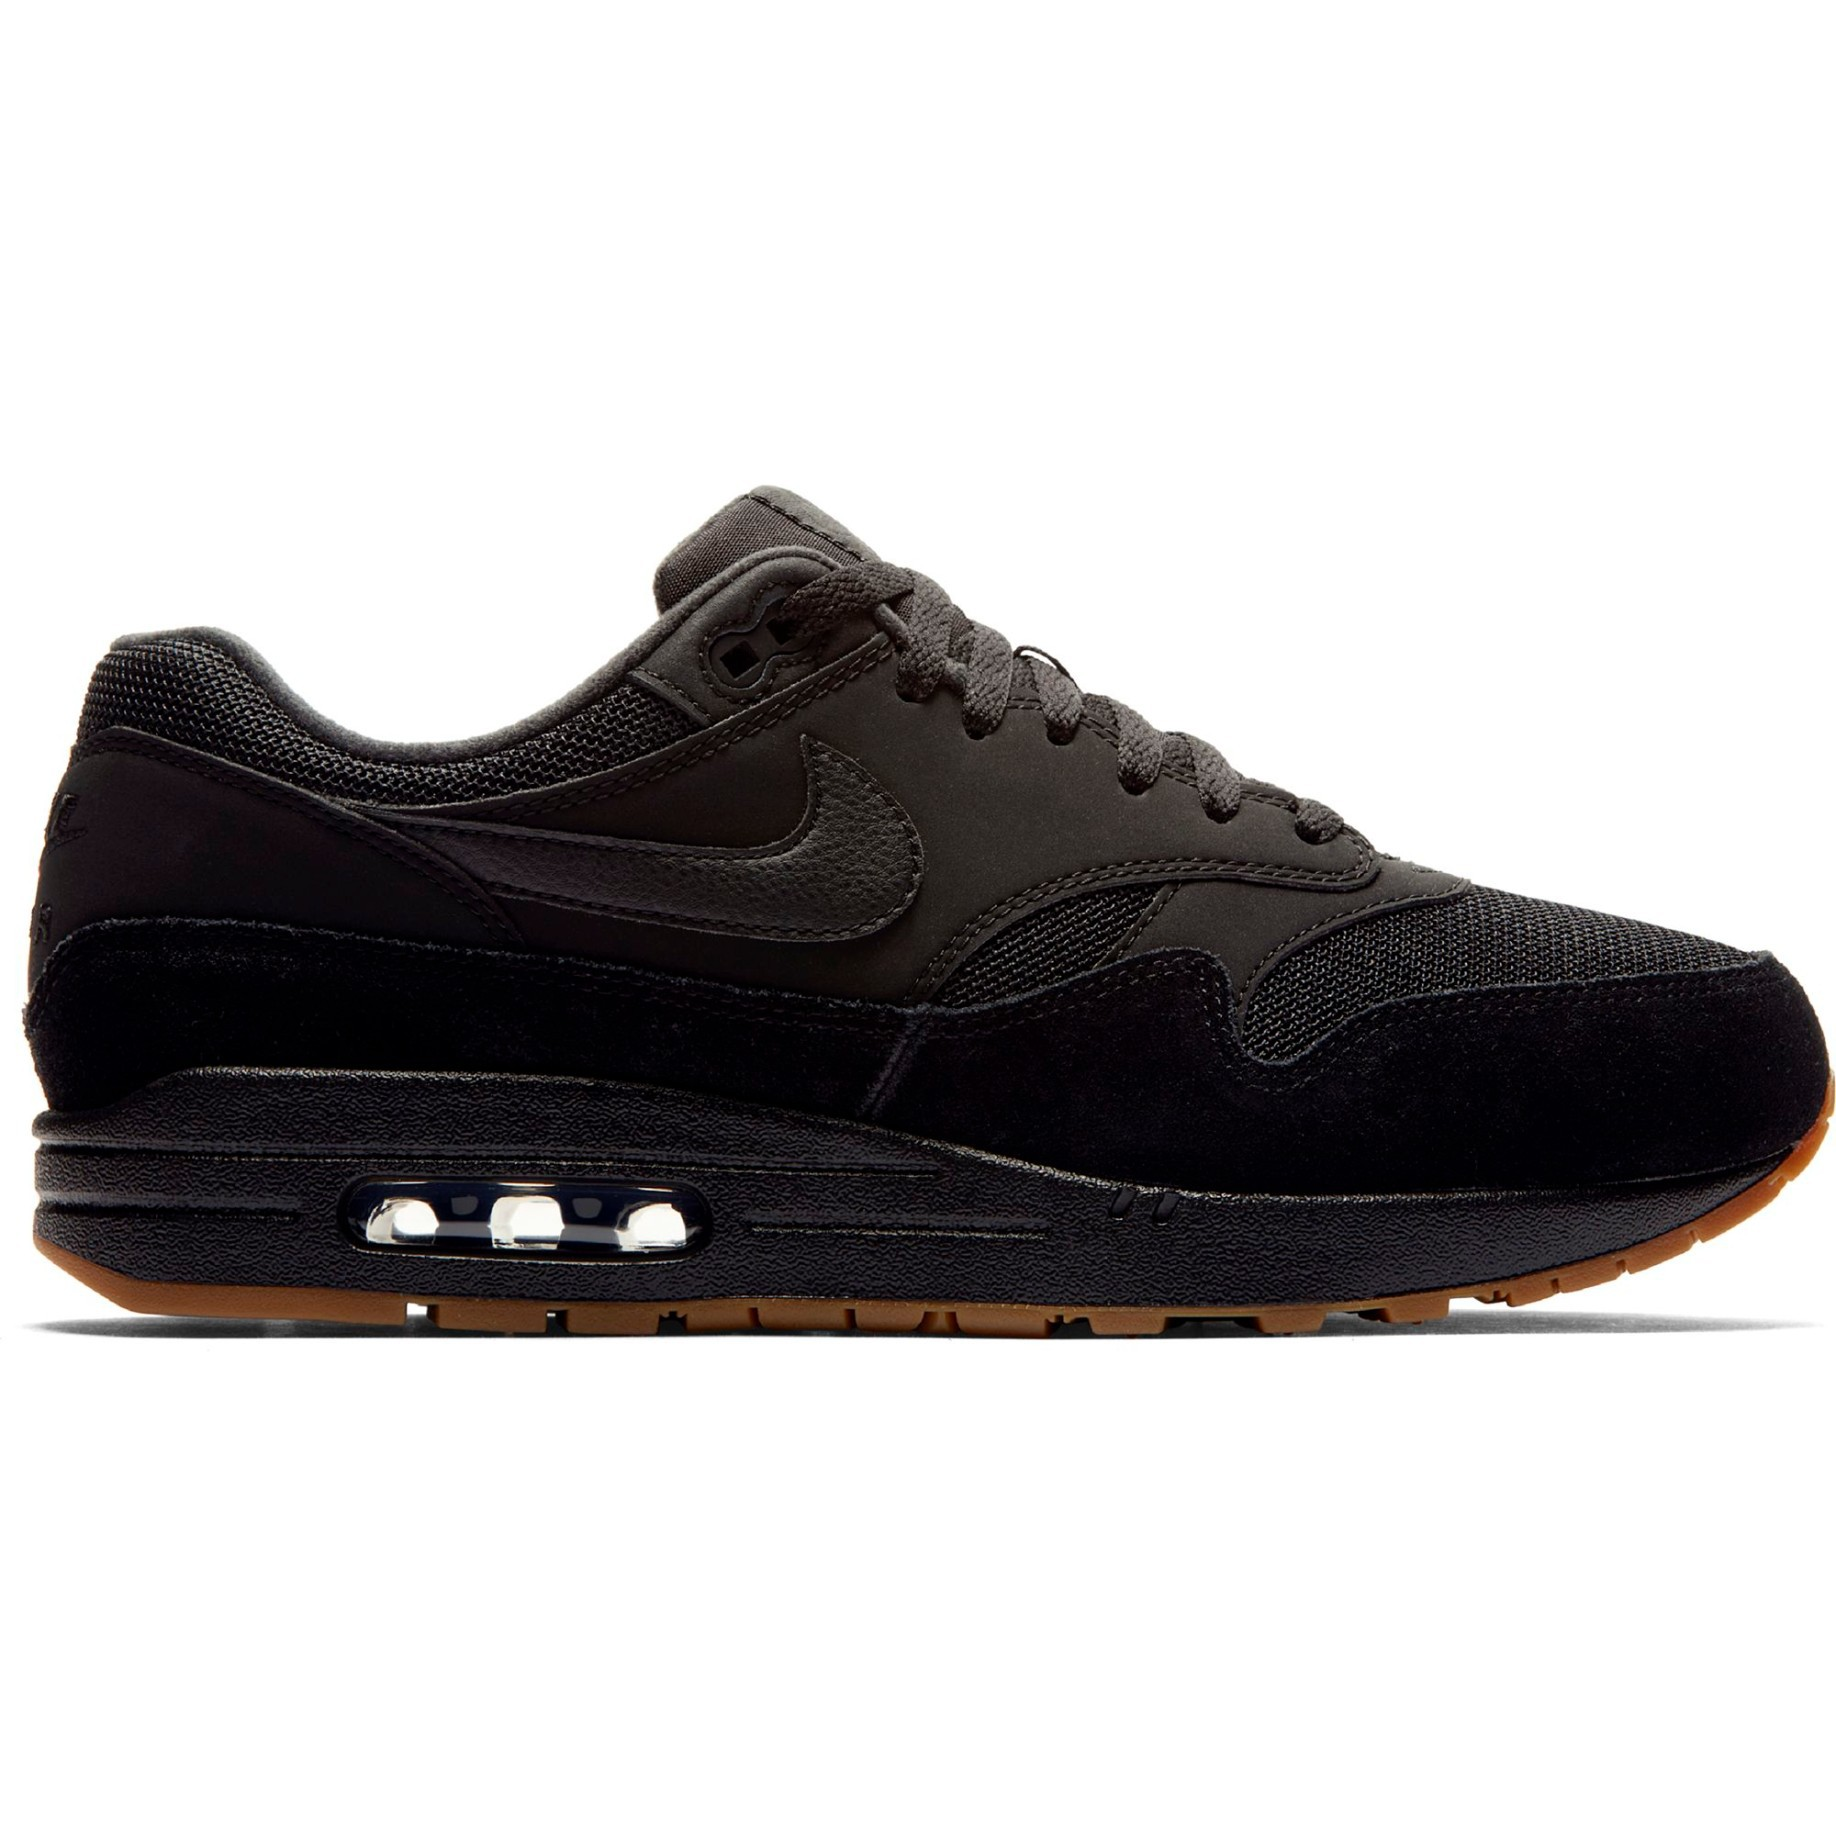 sports shoes 3fdaf 183a0 Mens Shoes Air Max 1 colore Black Brown - Nike - SportIT.com